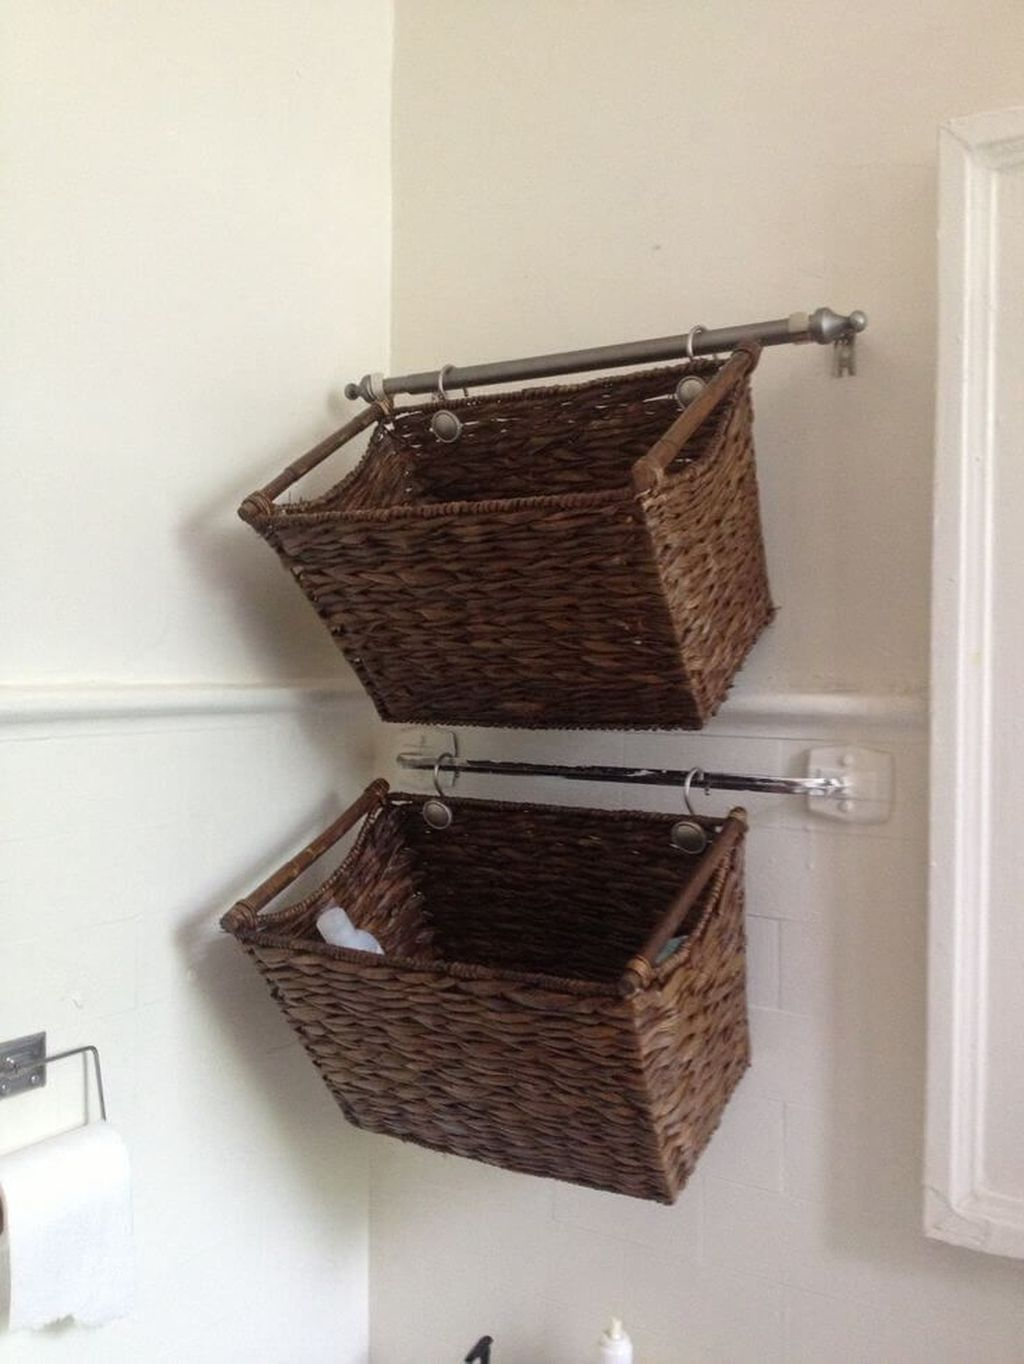 38 Astonishing Laundry Room Baskets Organizer Ideas For Small